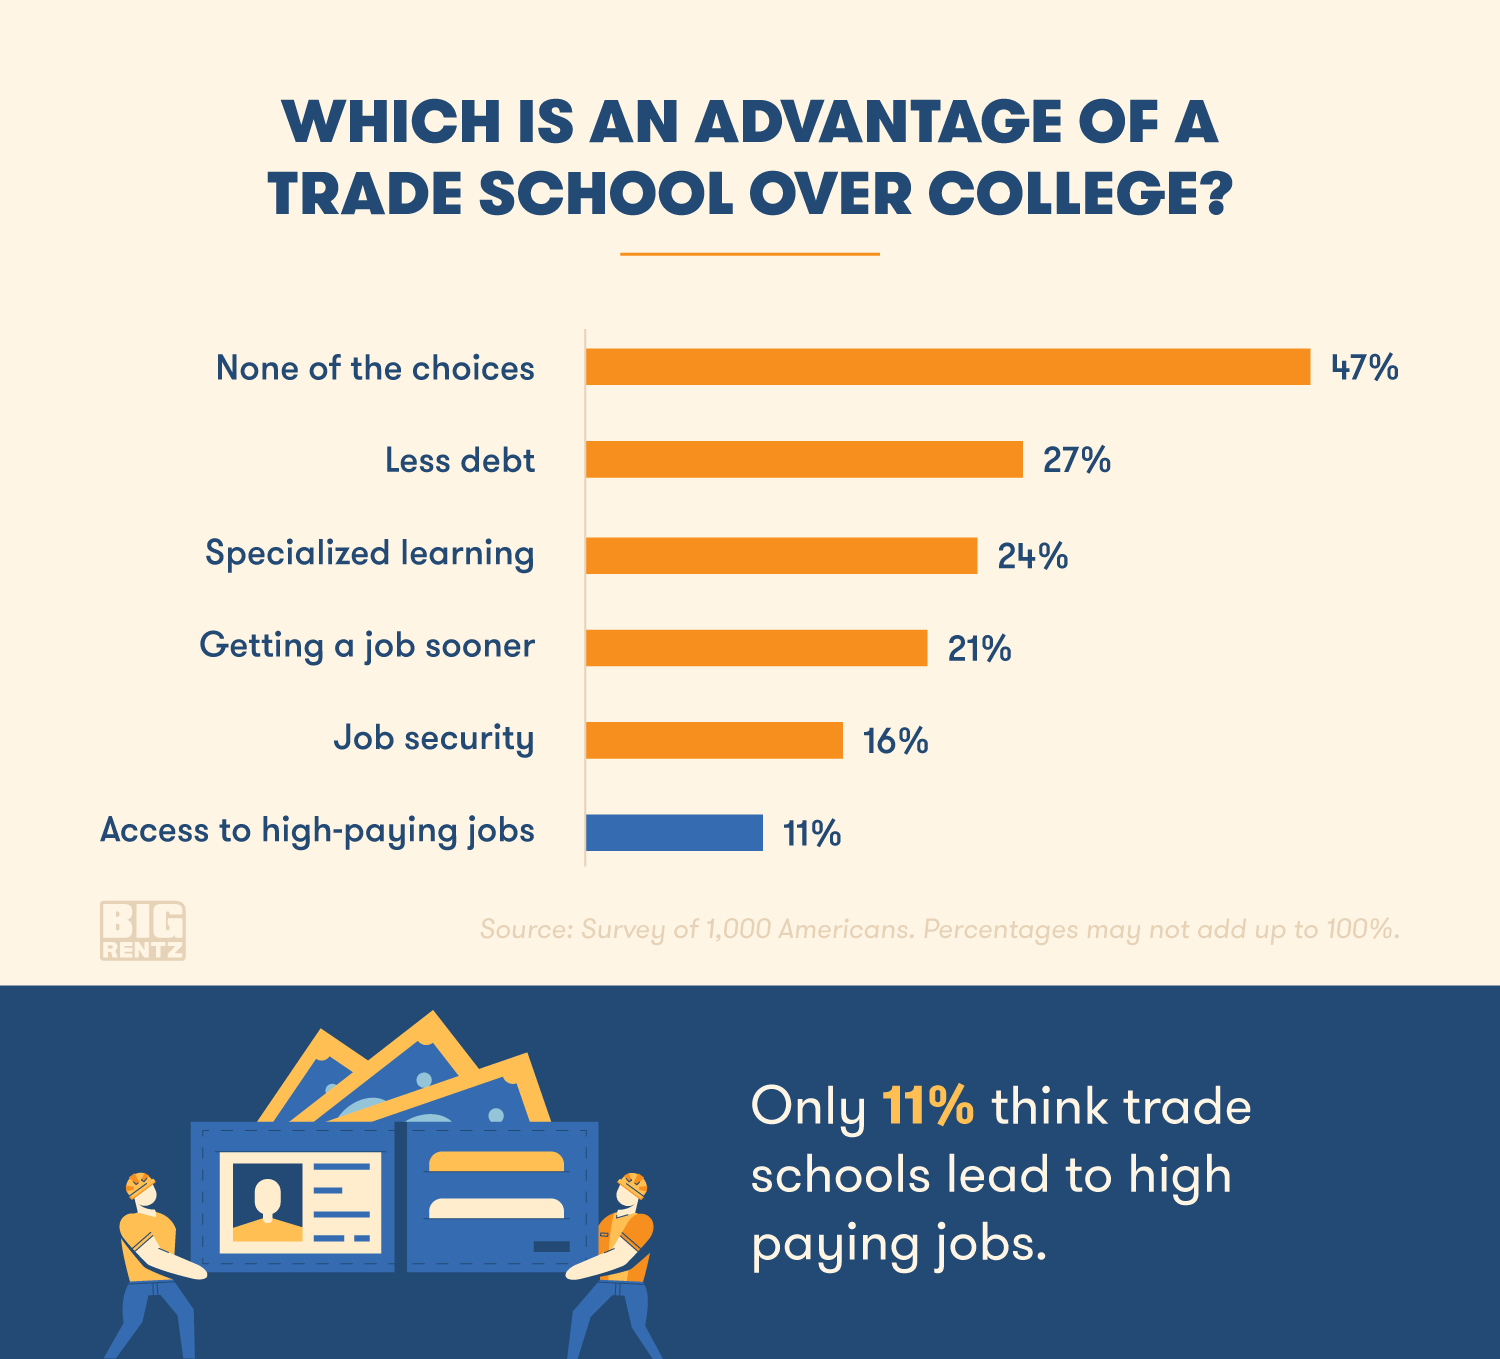 Only 11 percent of Americans think trade schools lead to high paying jobs.